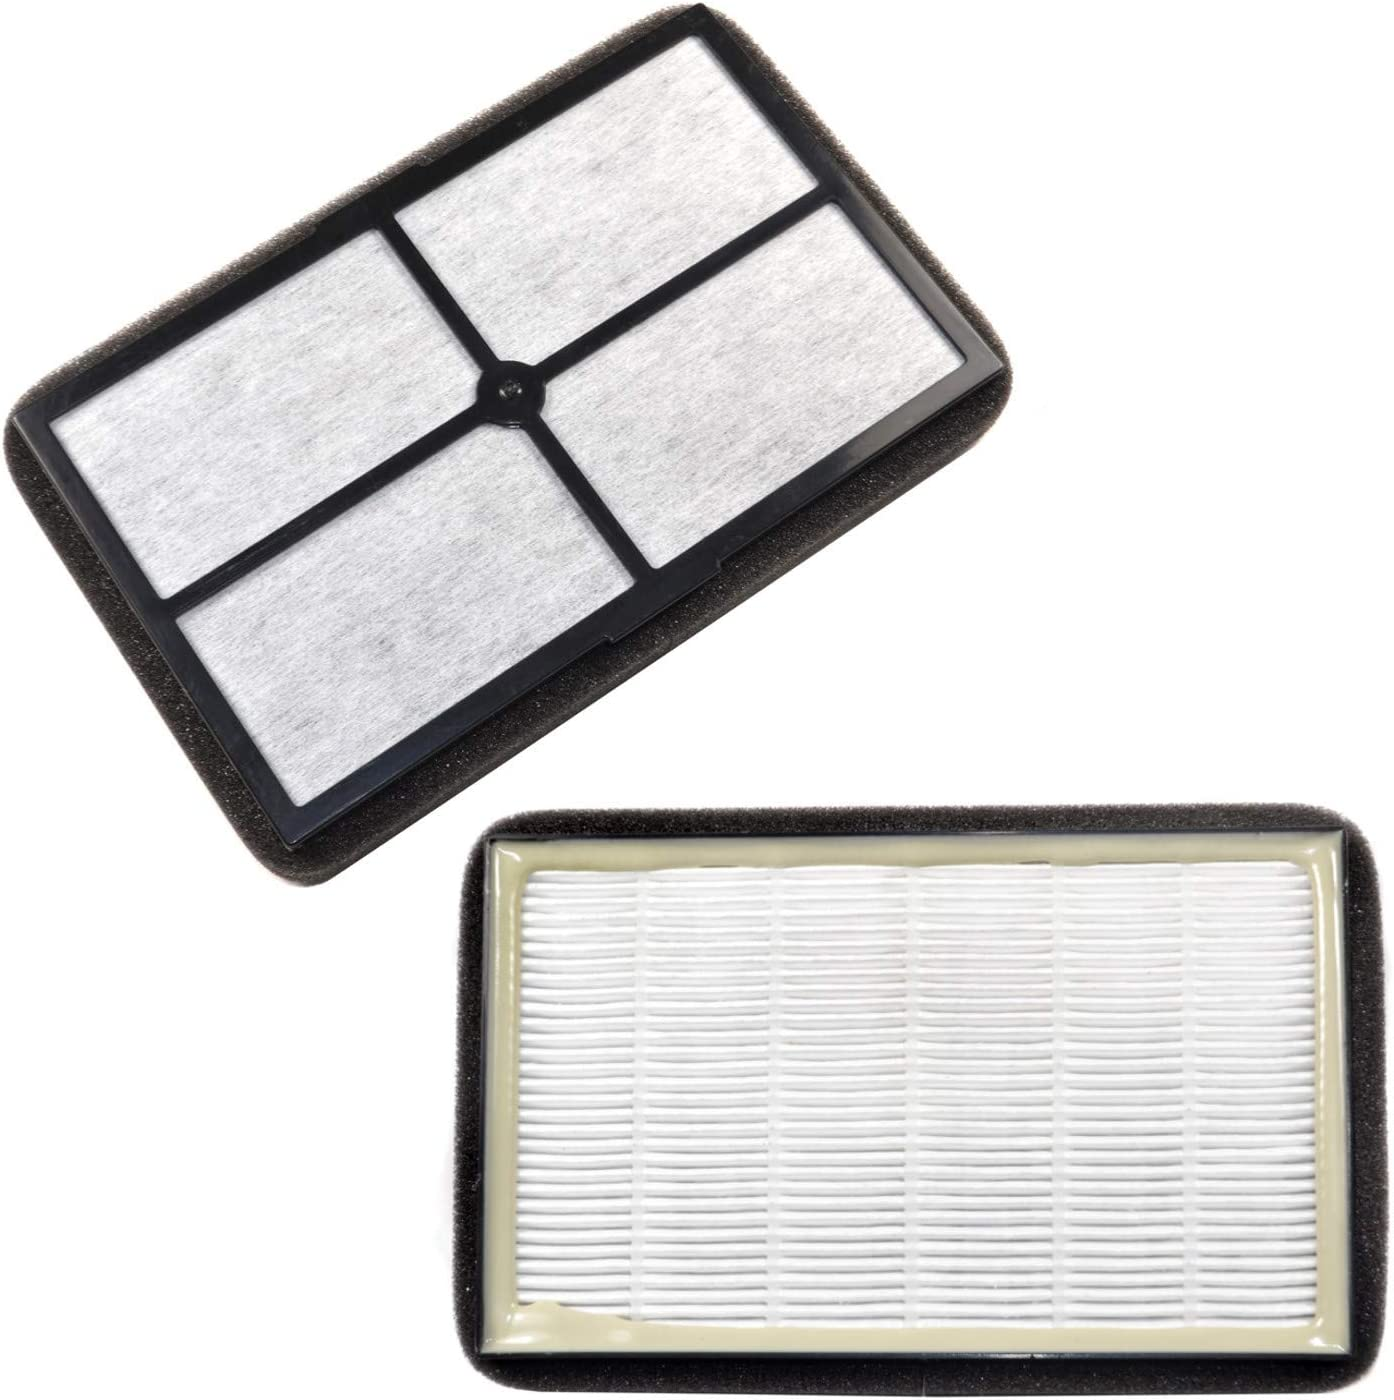 HQRP 2-pack HEPA Air Filter compatible with Black&Decker BXAP040 BXAP041 Table Top, parts BXFLTX FLT4010 Replacement